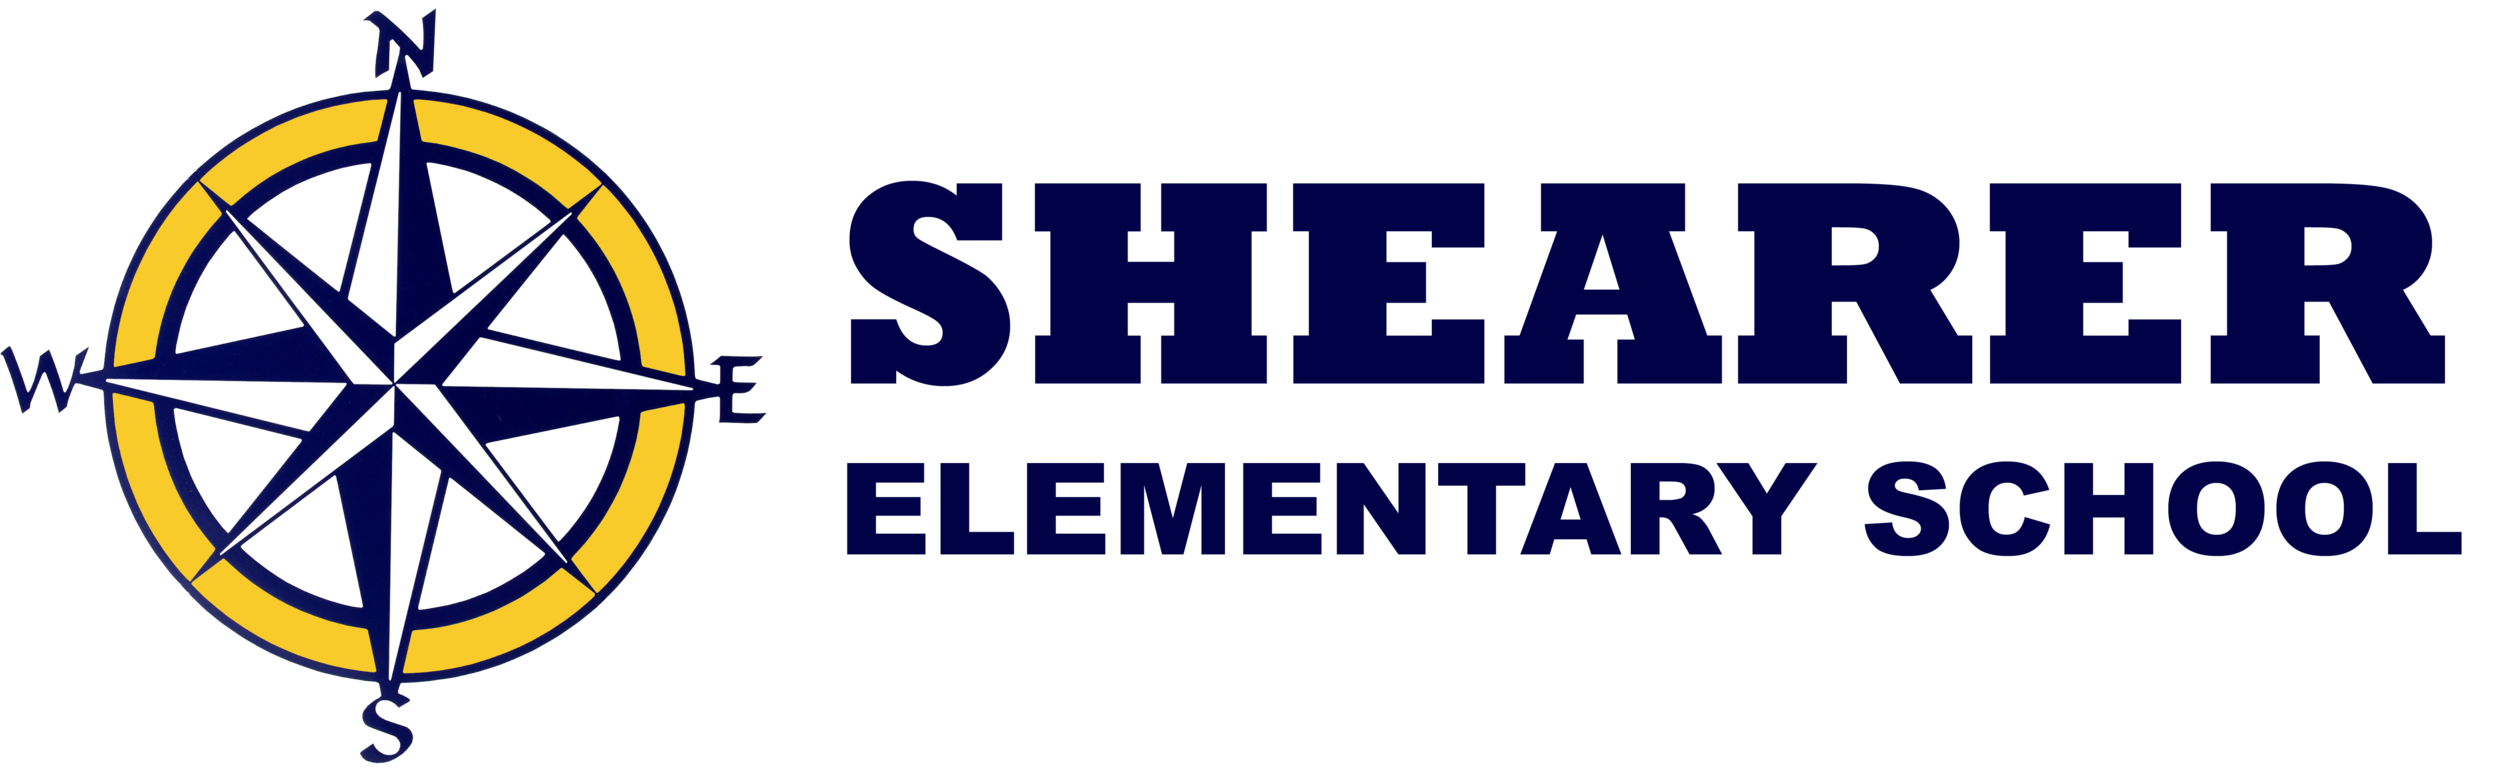 Shearer Logo with name.png